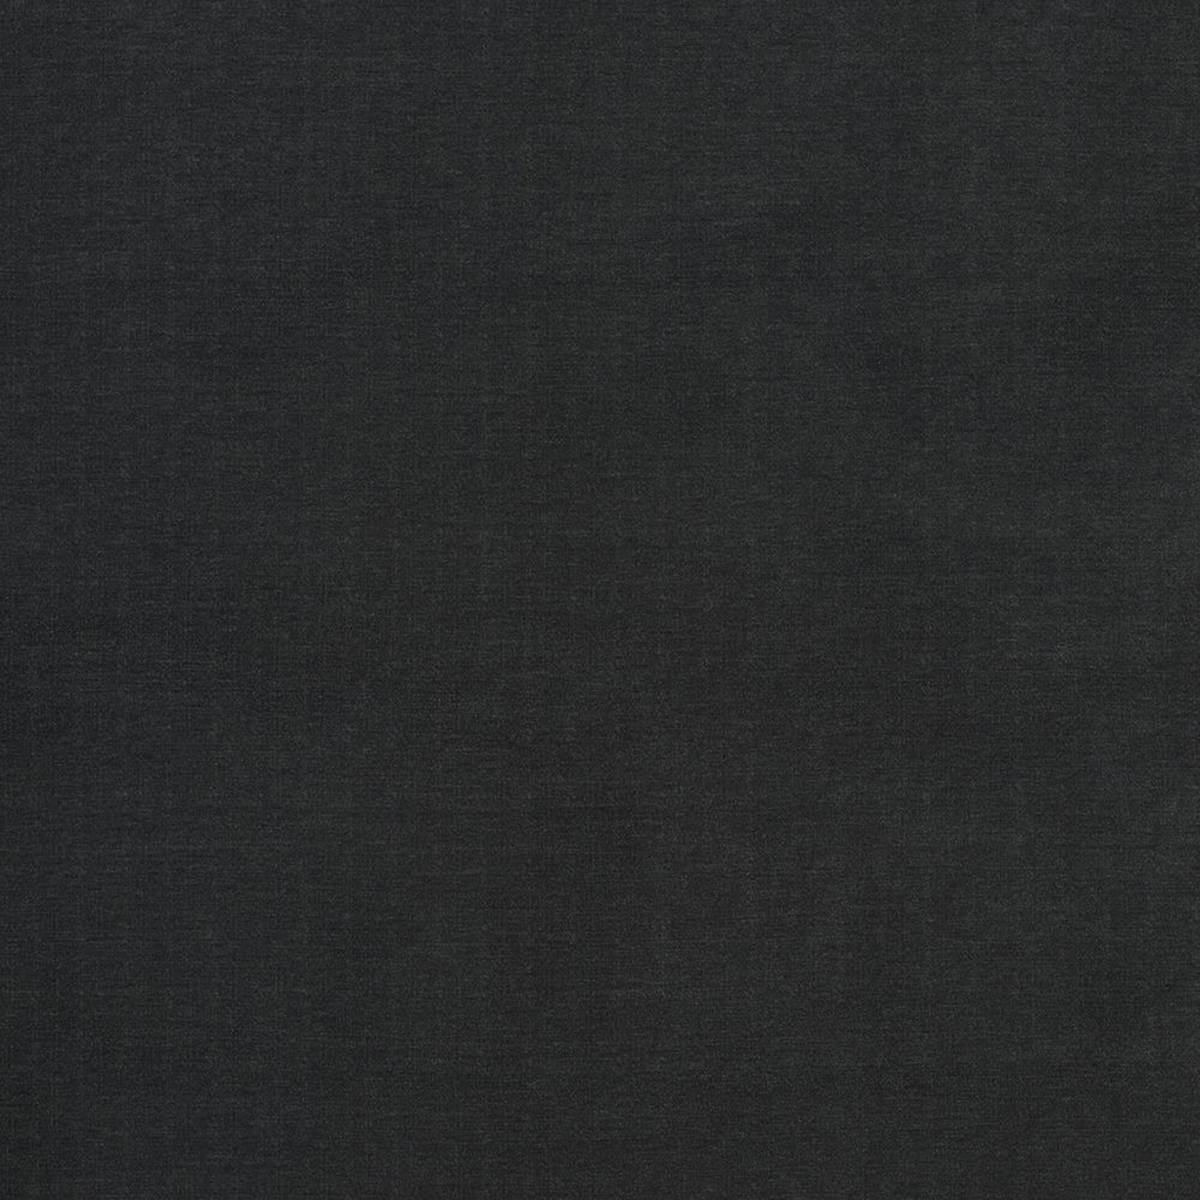 the best attitude 3eb7c e3453 Camengo La Seine Fabrics La Seine Fabric - Anthracite - 41551302. Loading  zoom